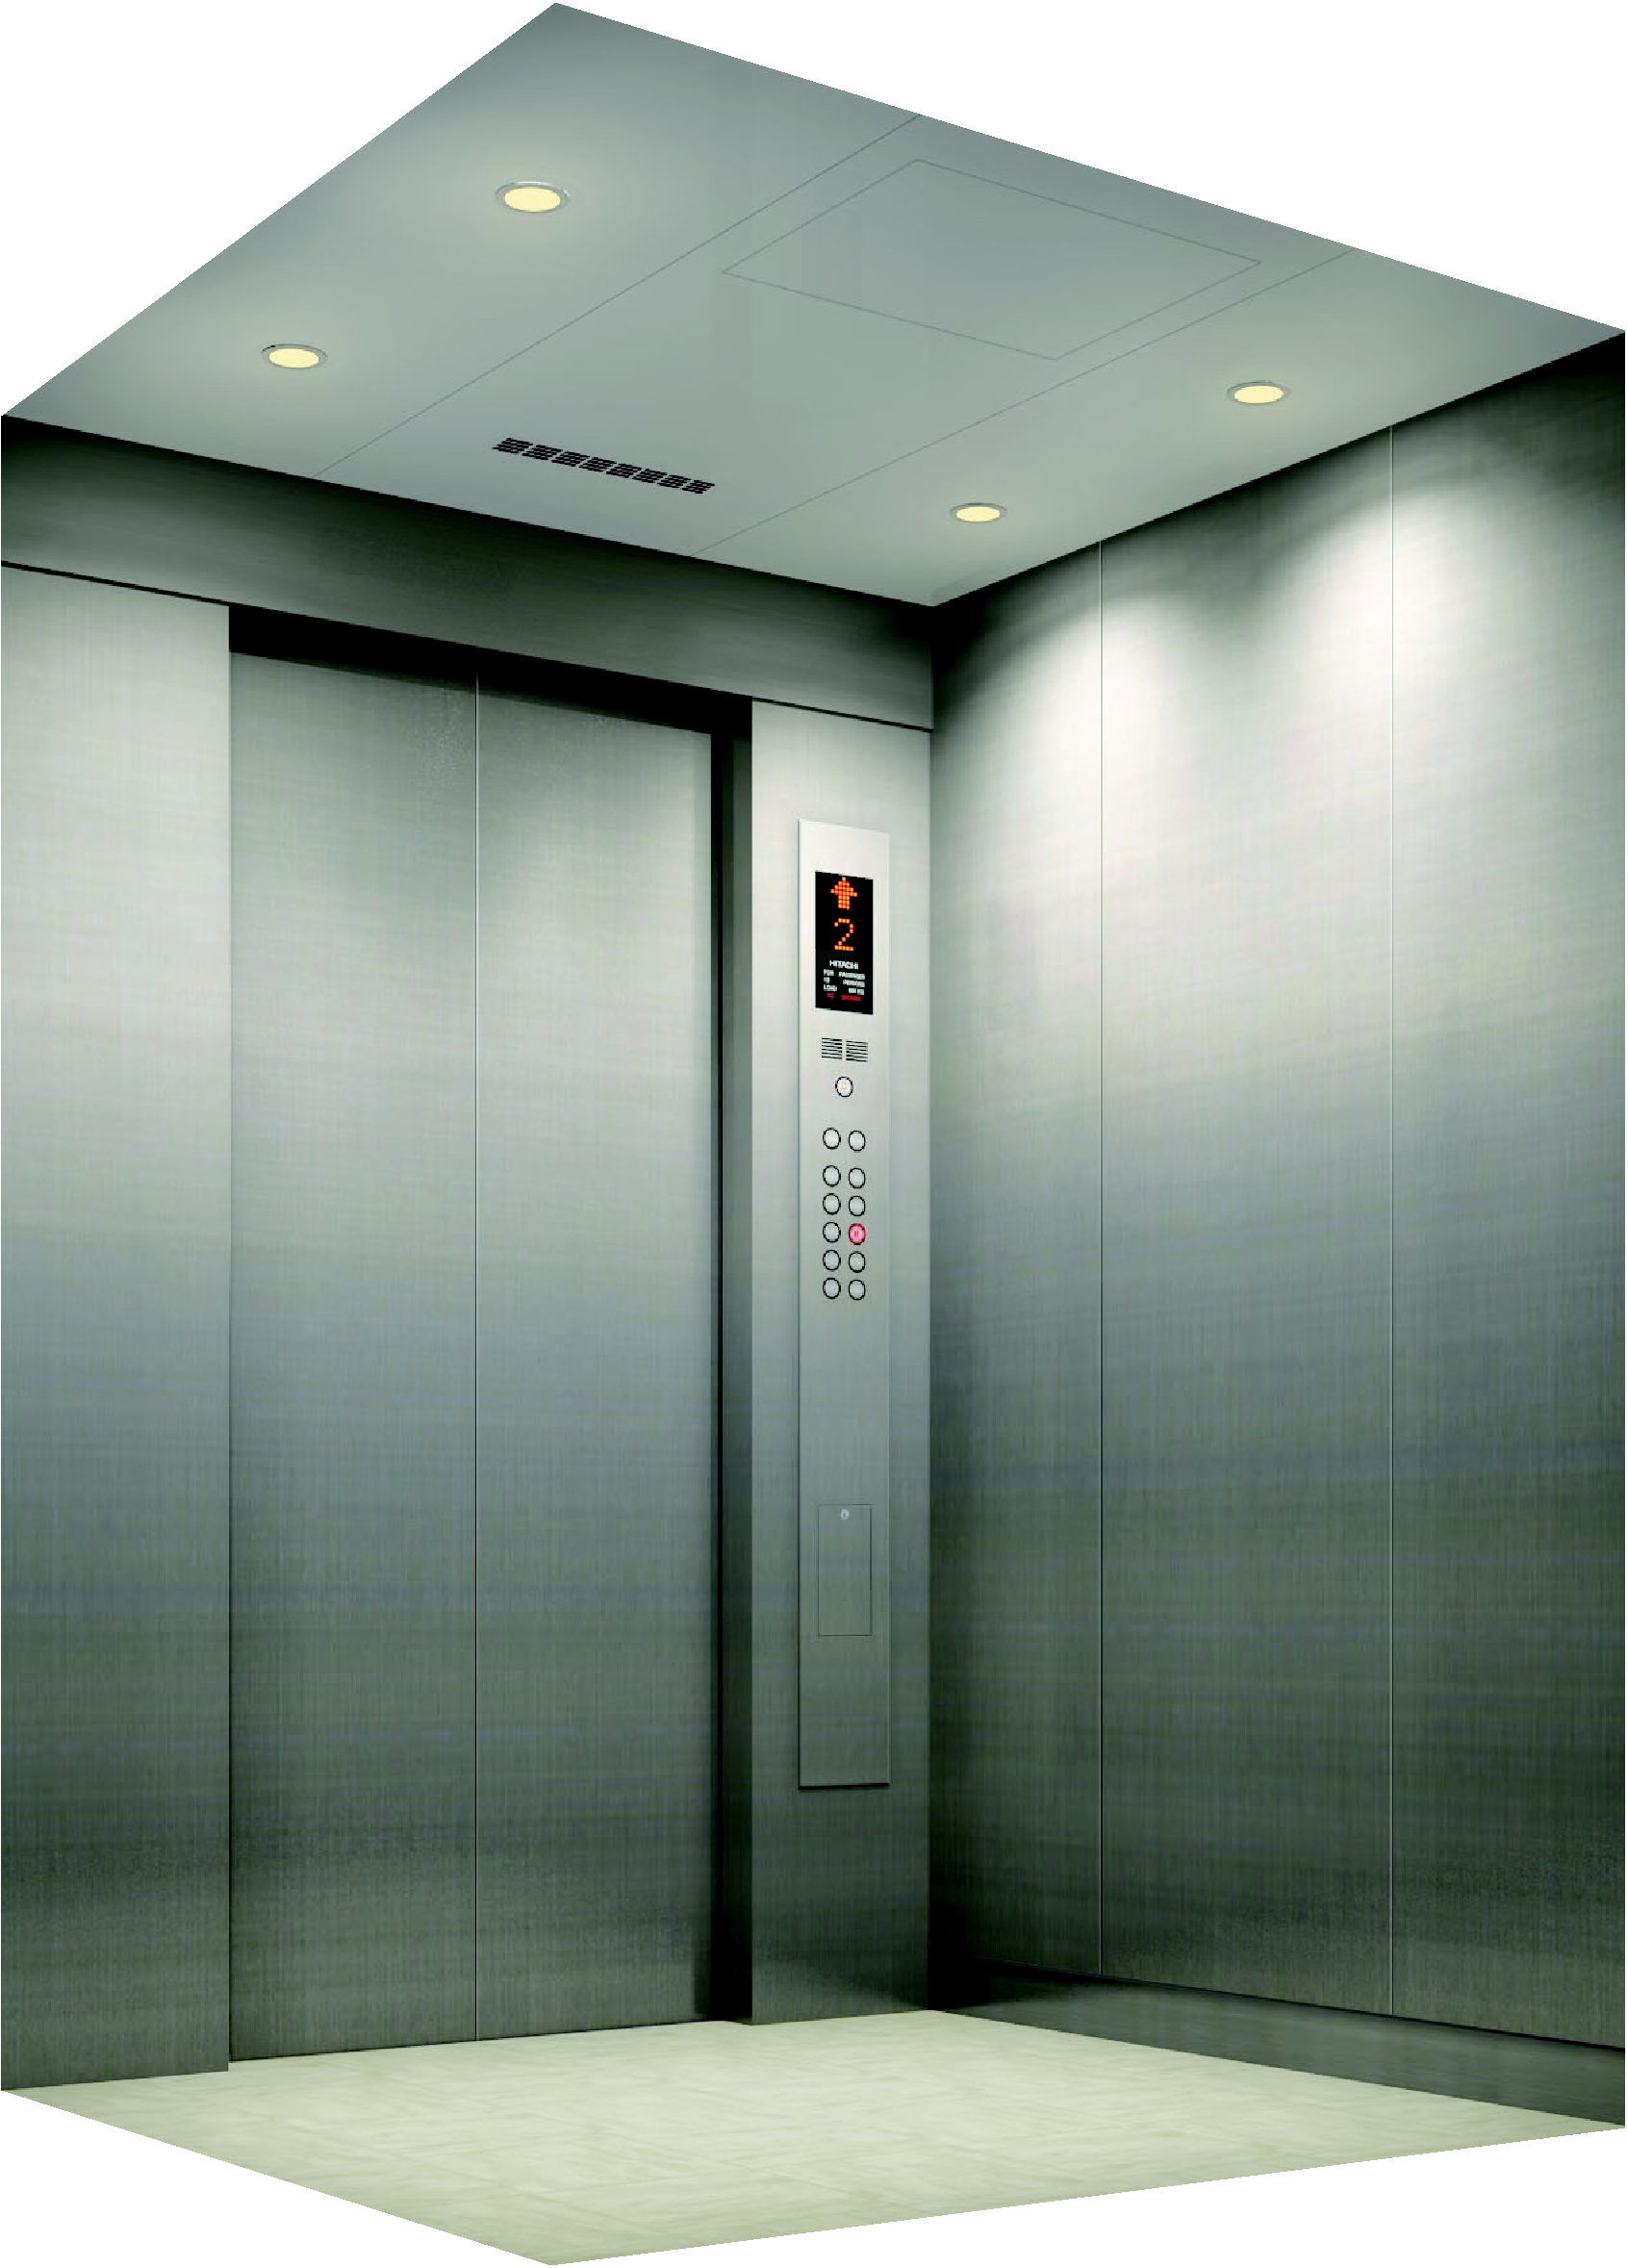 Design elevators hitachi elevator asia pte ltd for Product design singapore